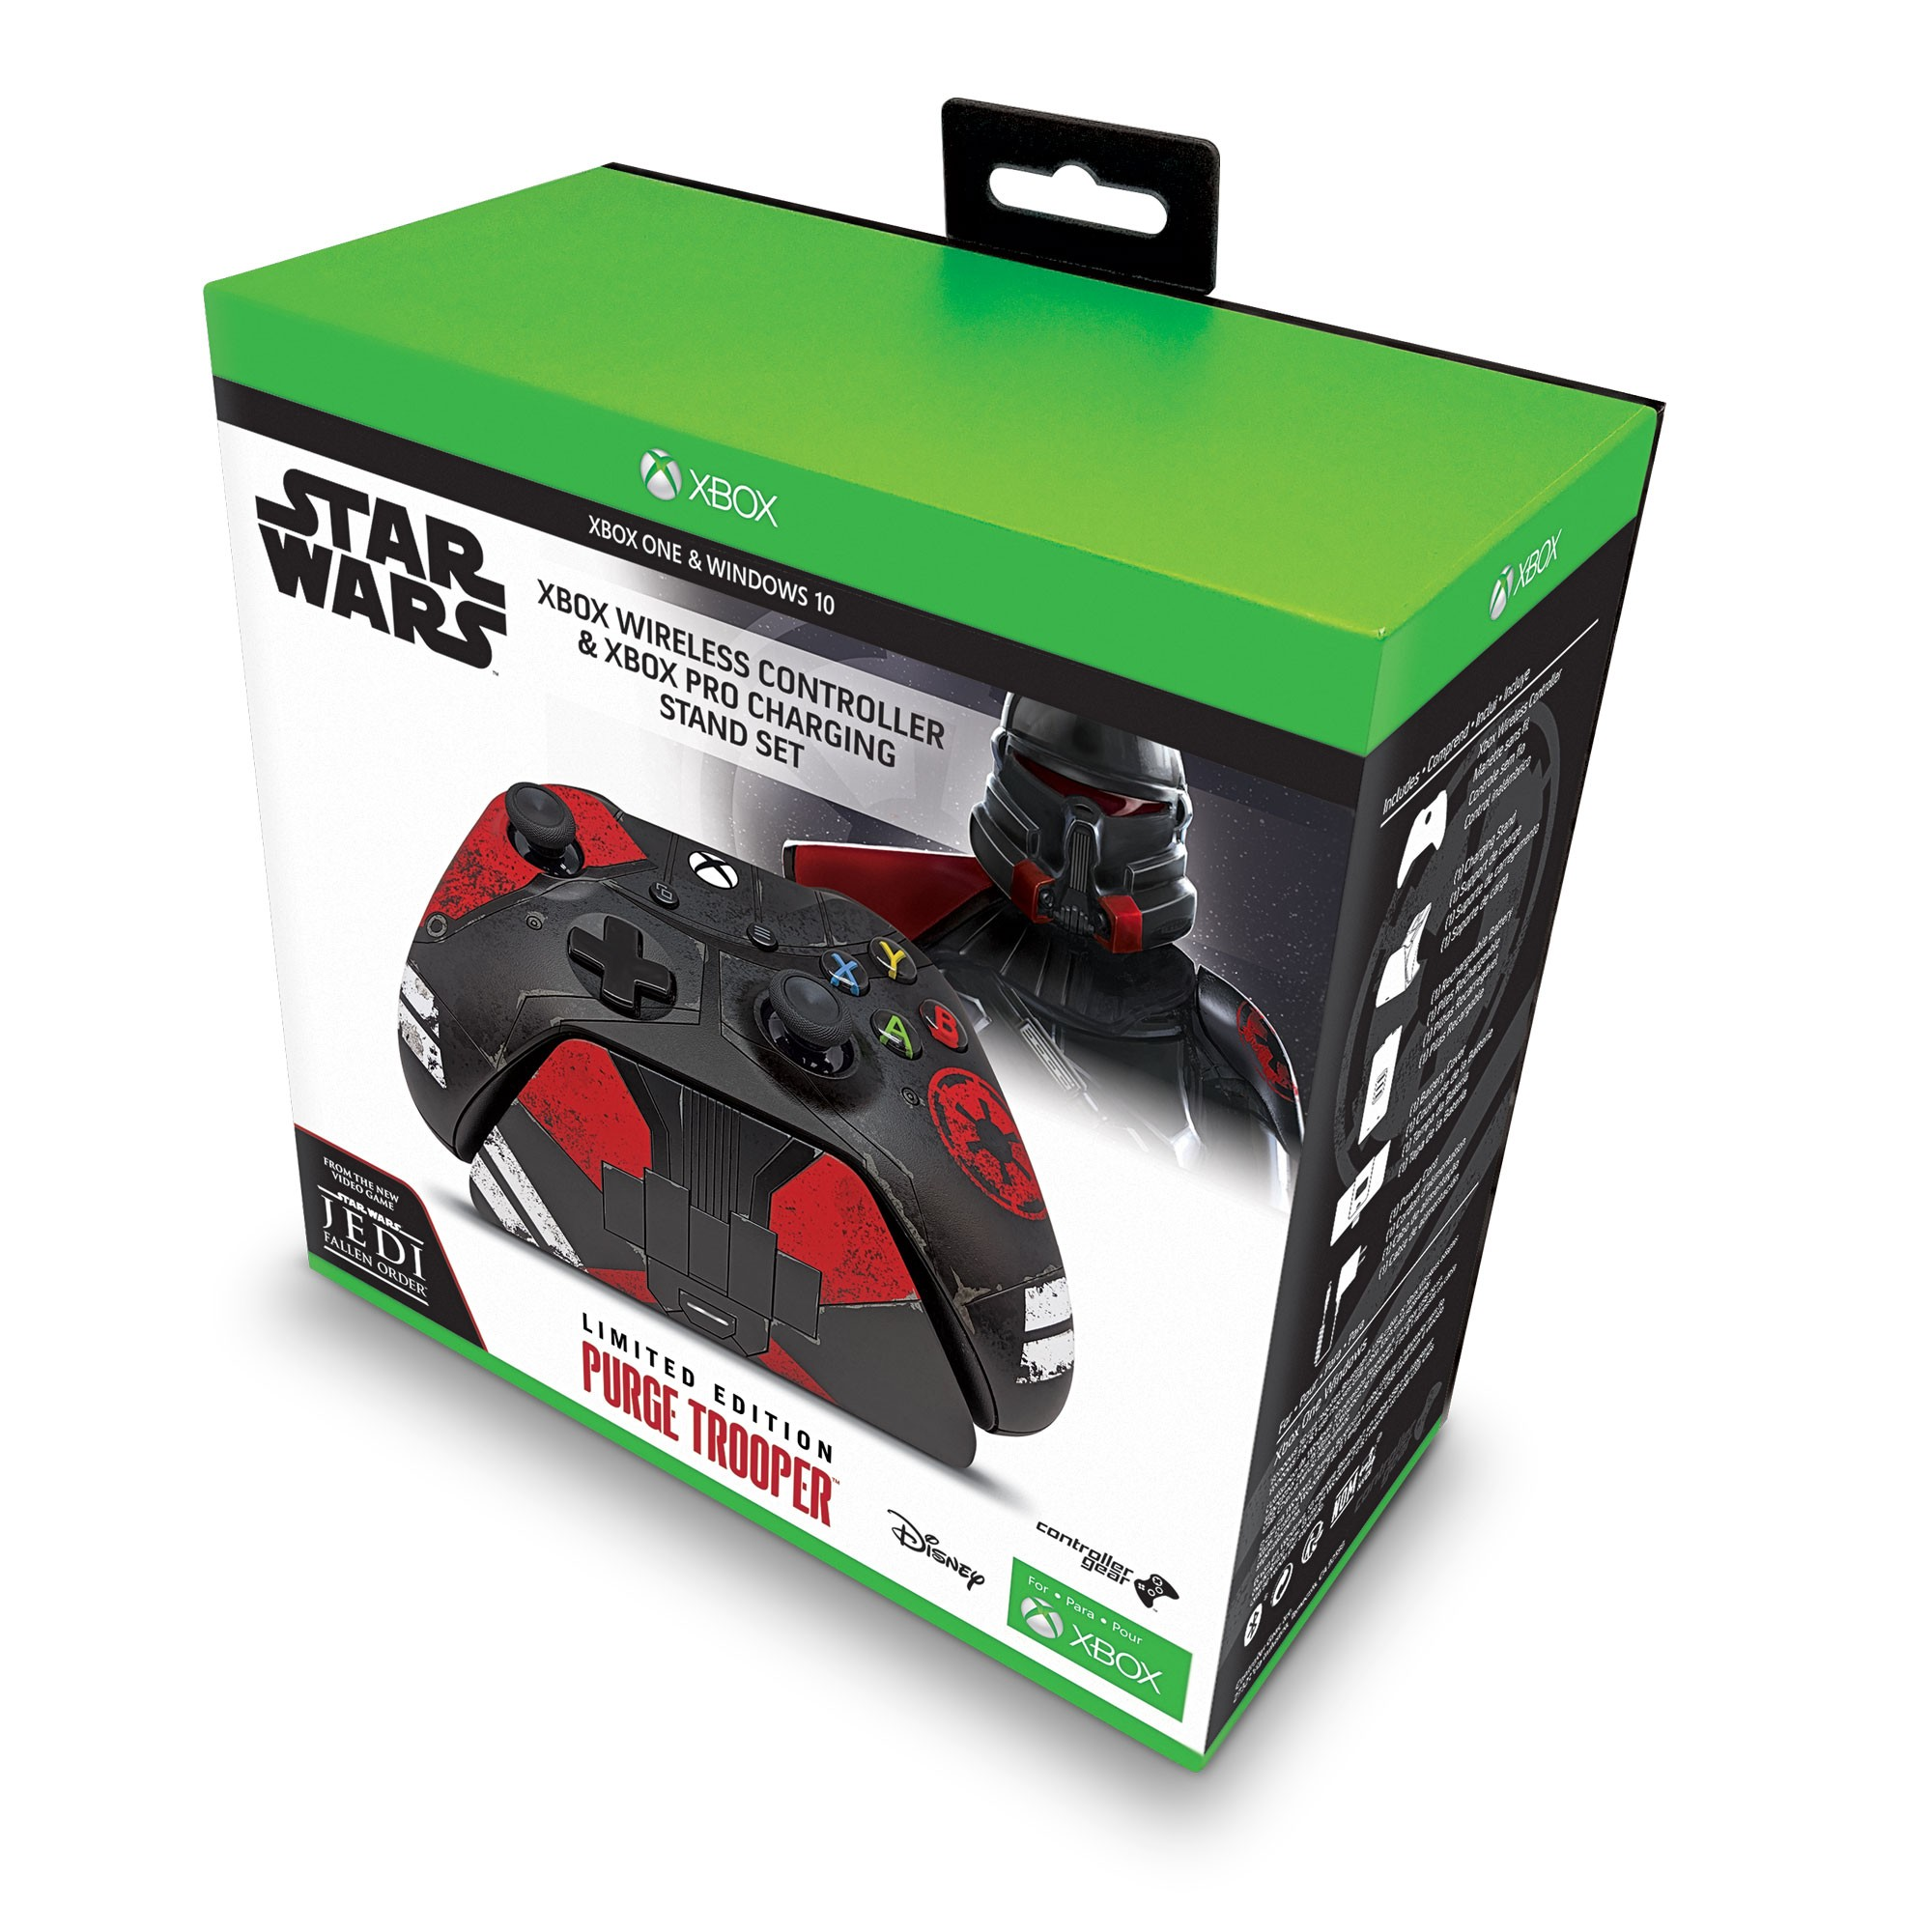 Star Wars Jedi: Fallen Order Limited Edition Purge Trooper Xbox Wireless Controller & Xbox Pro Charging Stand